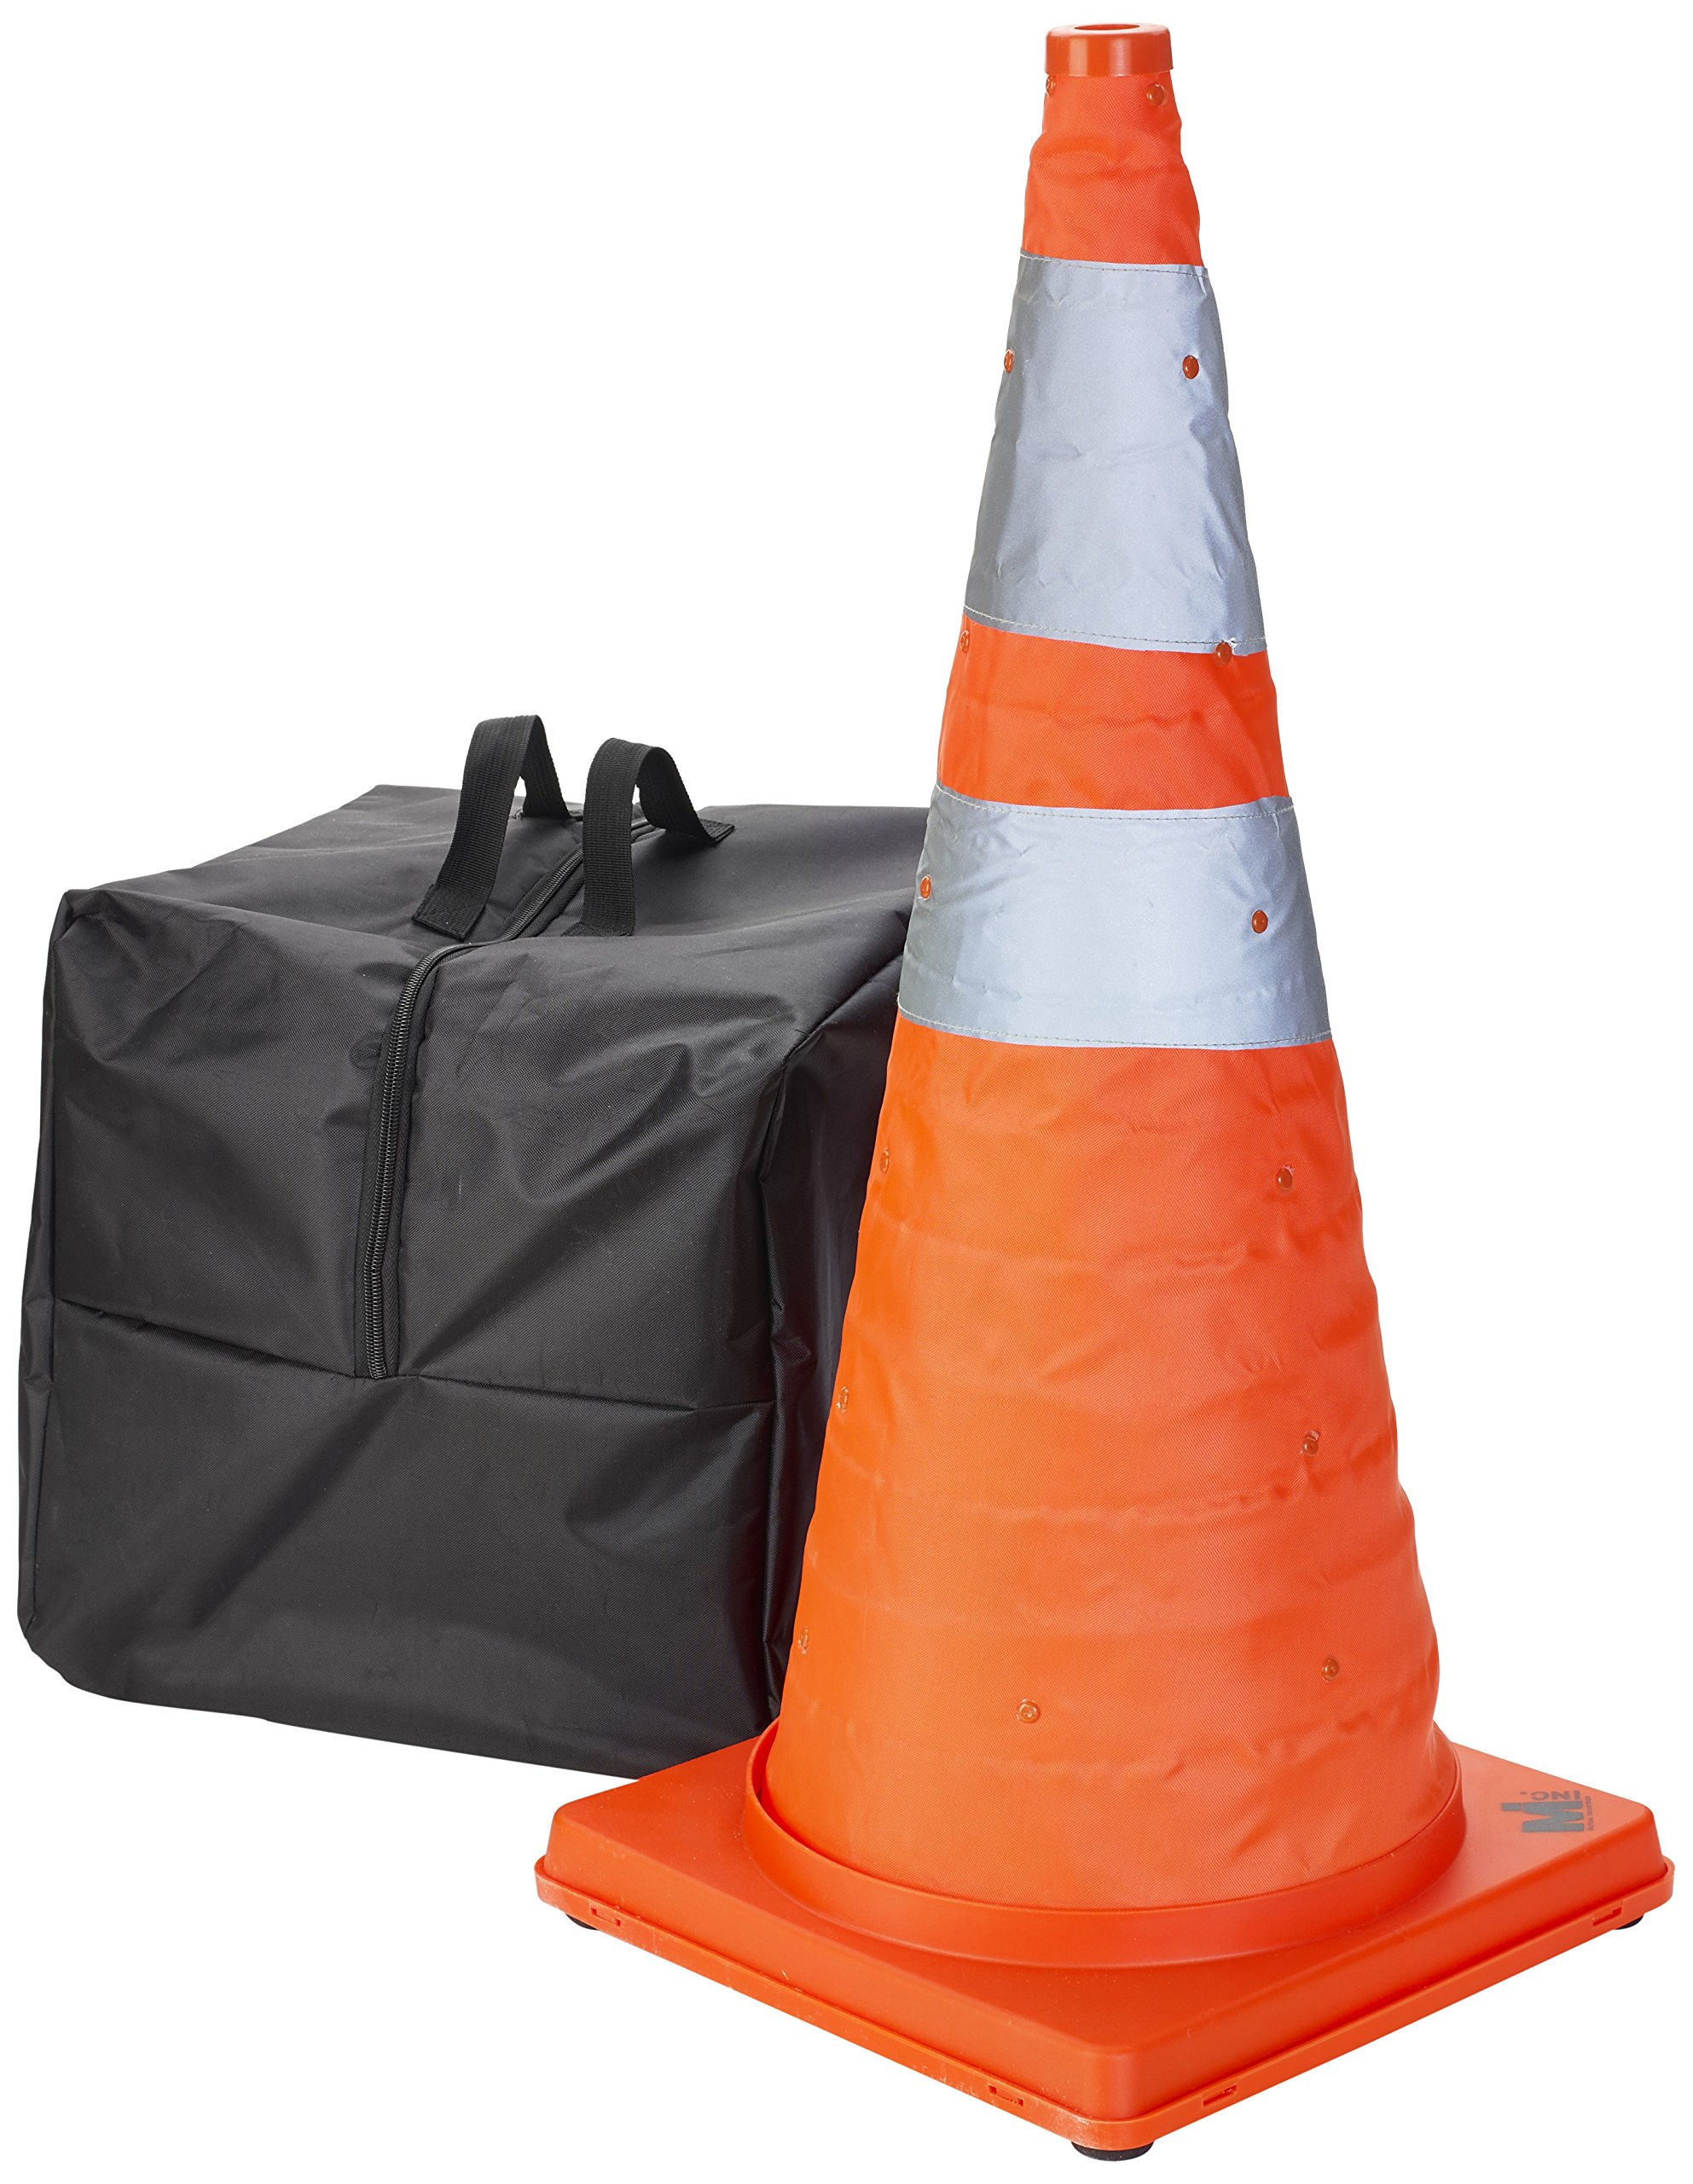 Mutual Industries 17714-5-28 Collapsible Cones, 28'' Height, 12'' Length, 12'' Width, Plastic, Orange and Reflective Silver (Pack of 5)